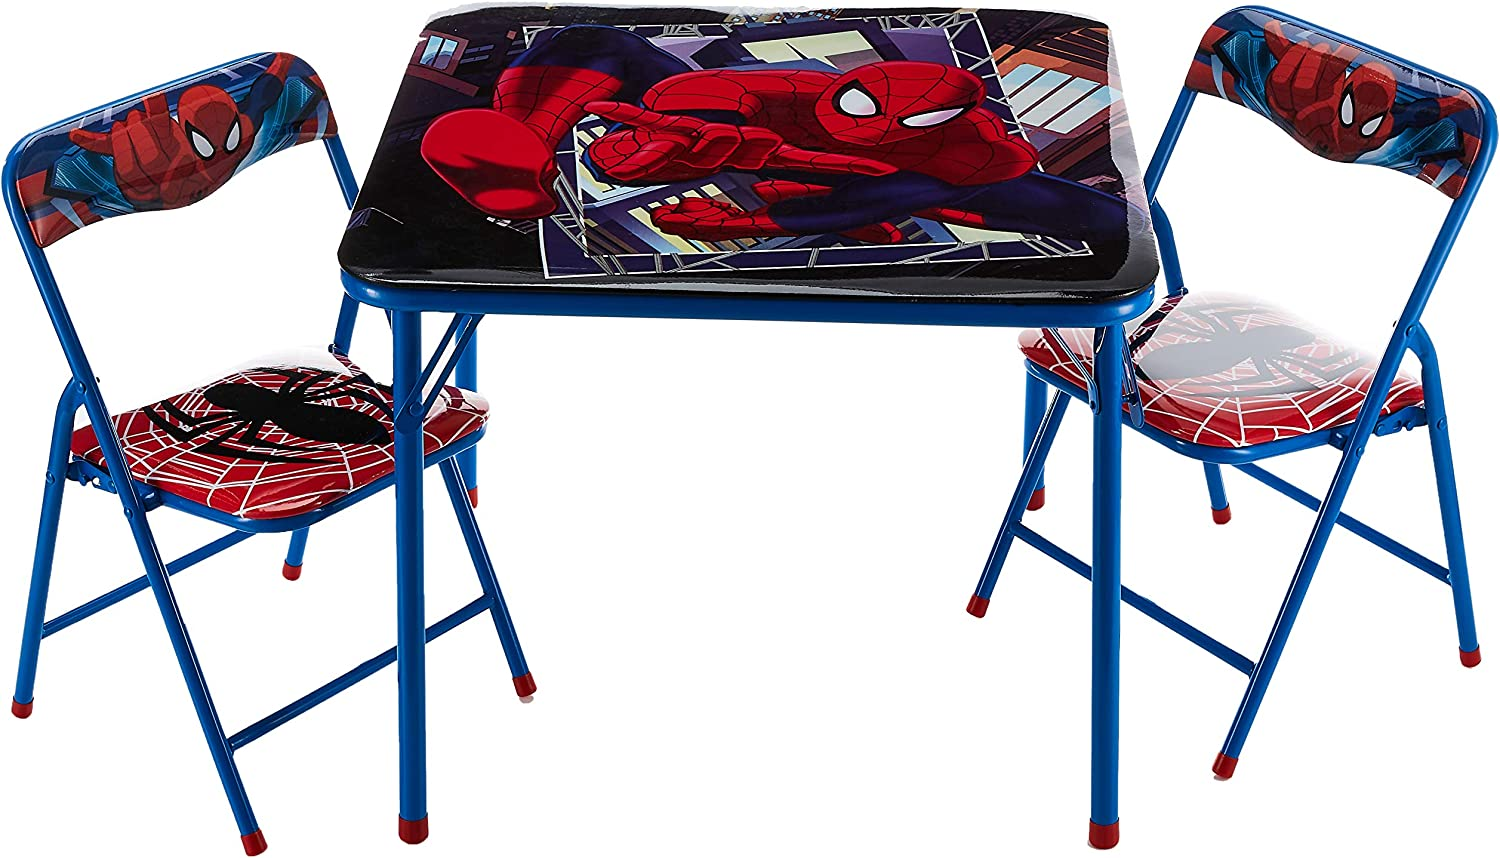 Idea Nuova Marvel Spiderman 3 Children's Animer and Today's only price revision T Piece Square Activity